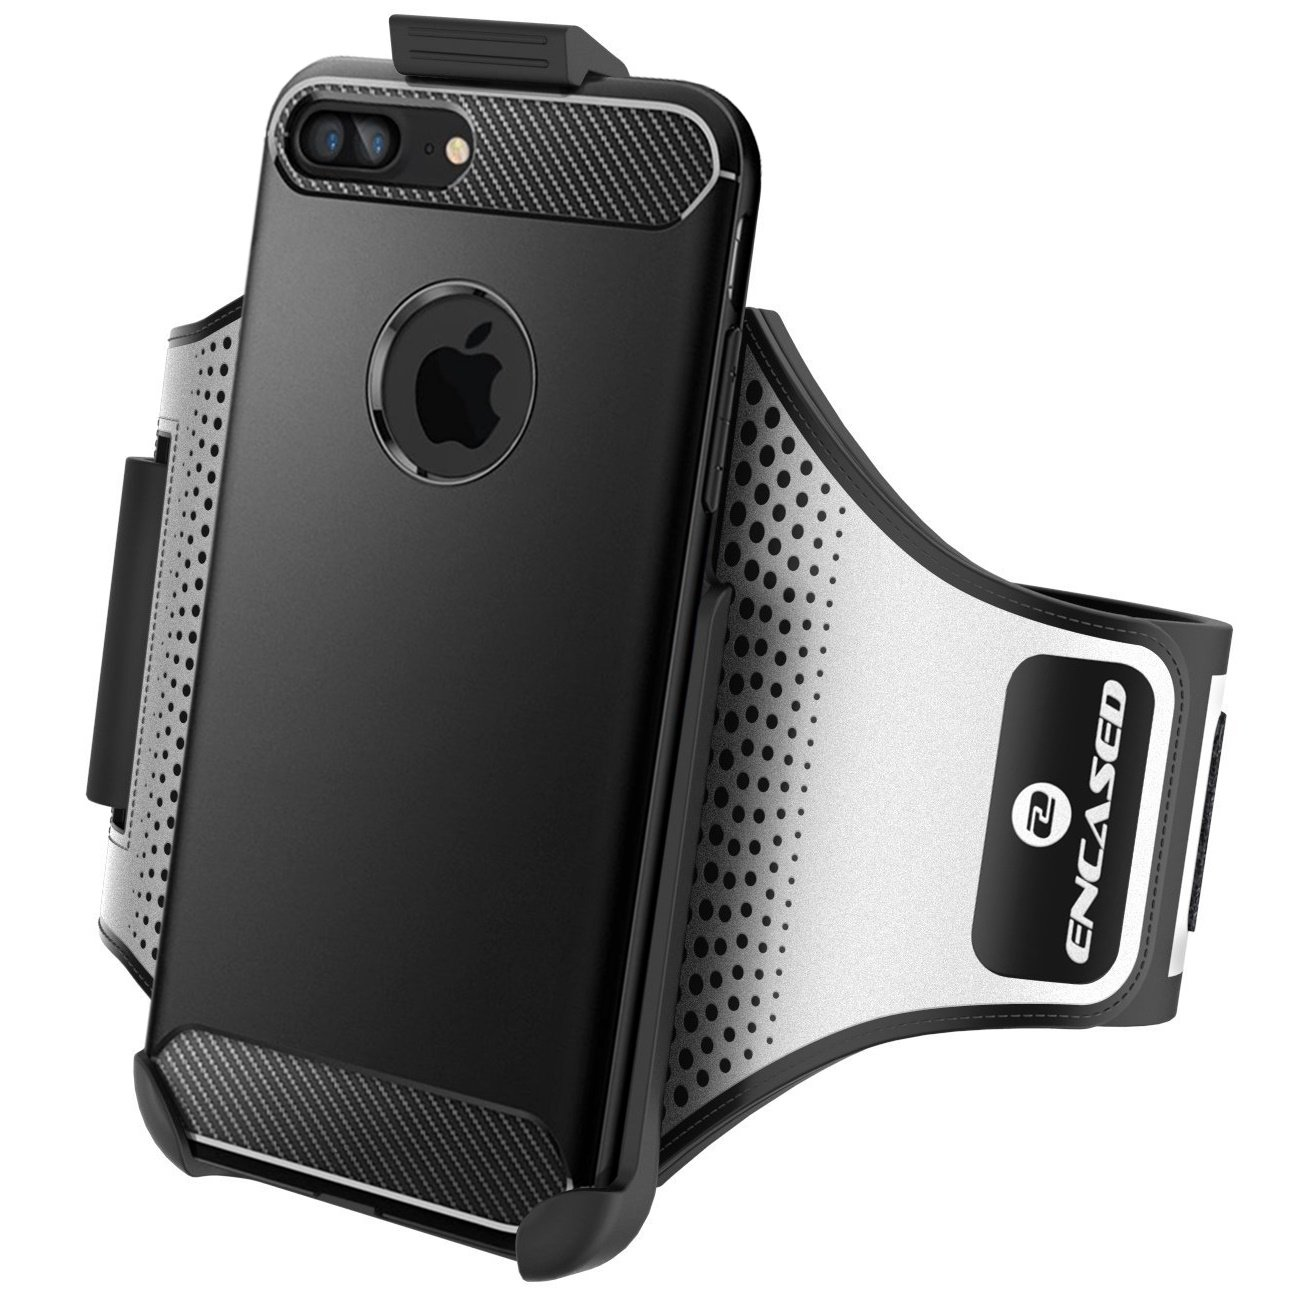 Workout Armband for Spigen Rugged Armor Case - iPhone 7 Plus & iPhone 8 Plus (5.5''), Sweat-Resistant Band (case is not Included) (Encased Products) by Encased